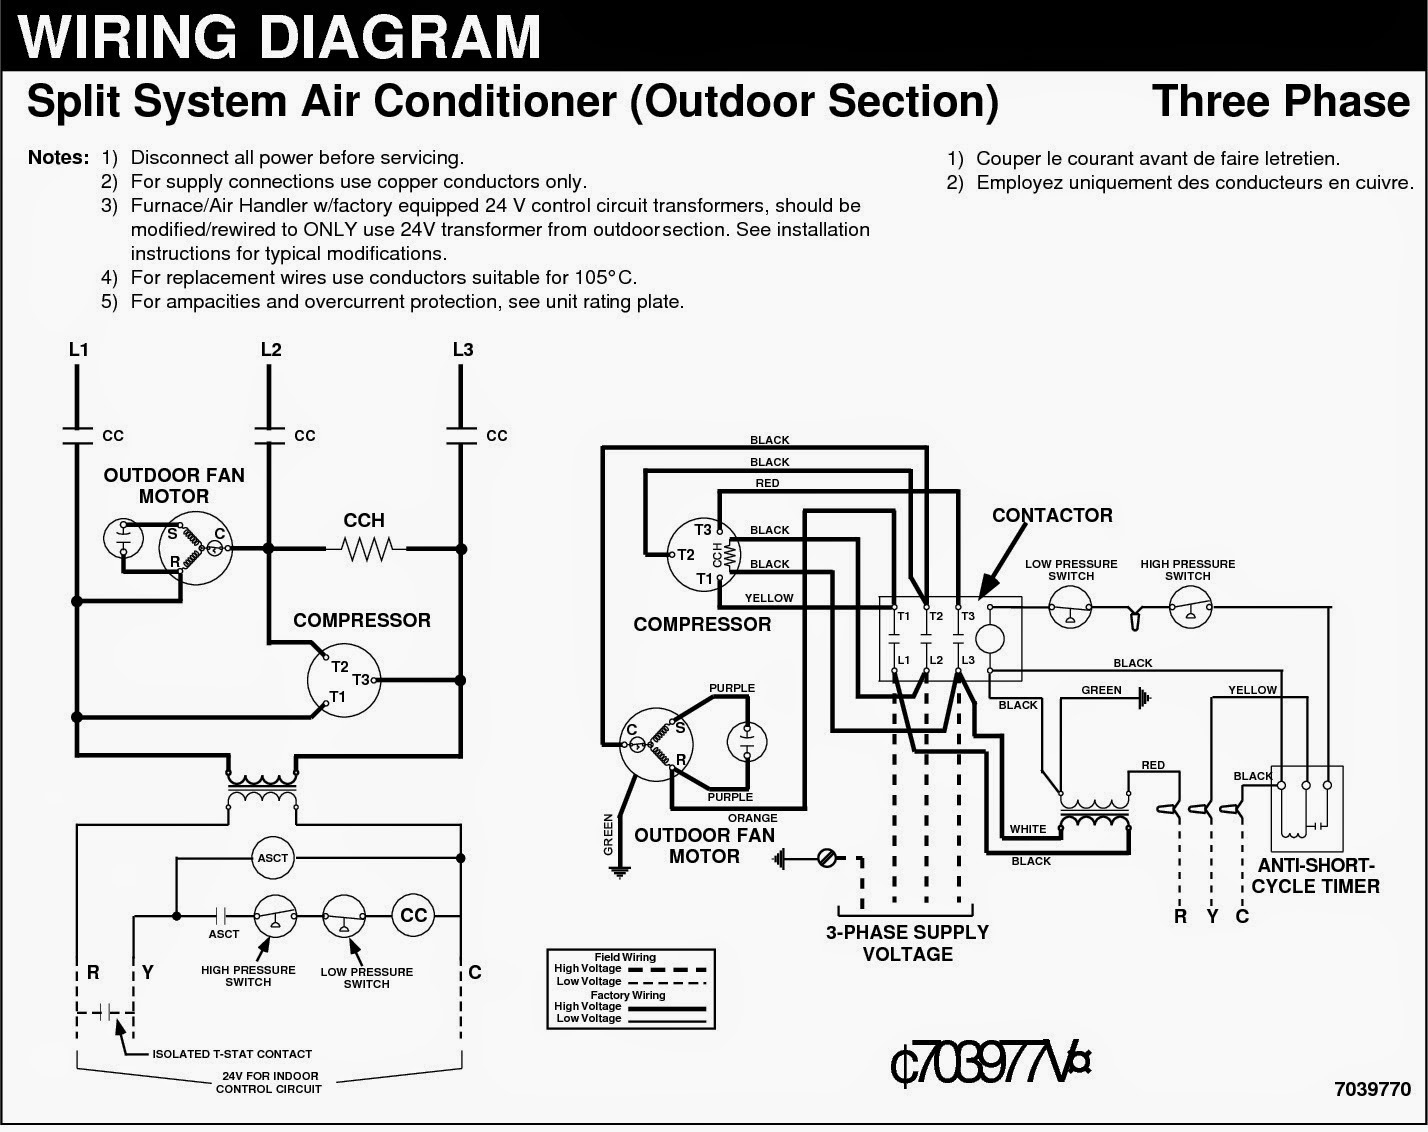 Home Air Conditioner Wiring Diagram - Wiring Diagrams Hubs - Air Conditioner Wiring Diagram